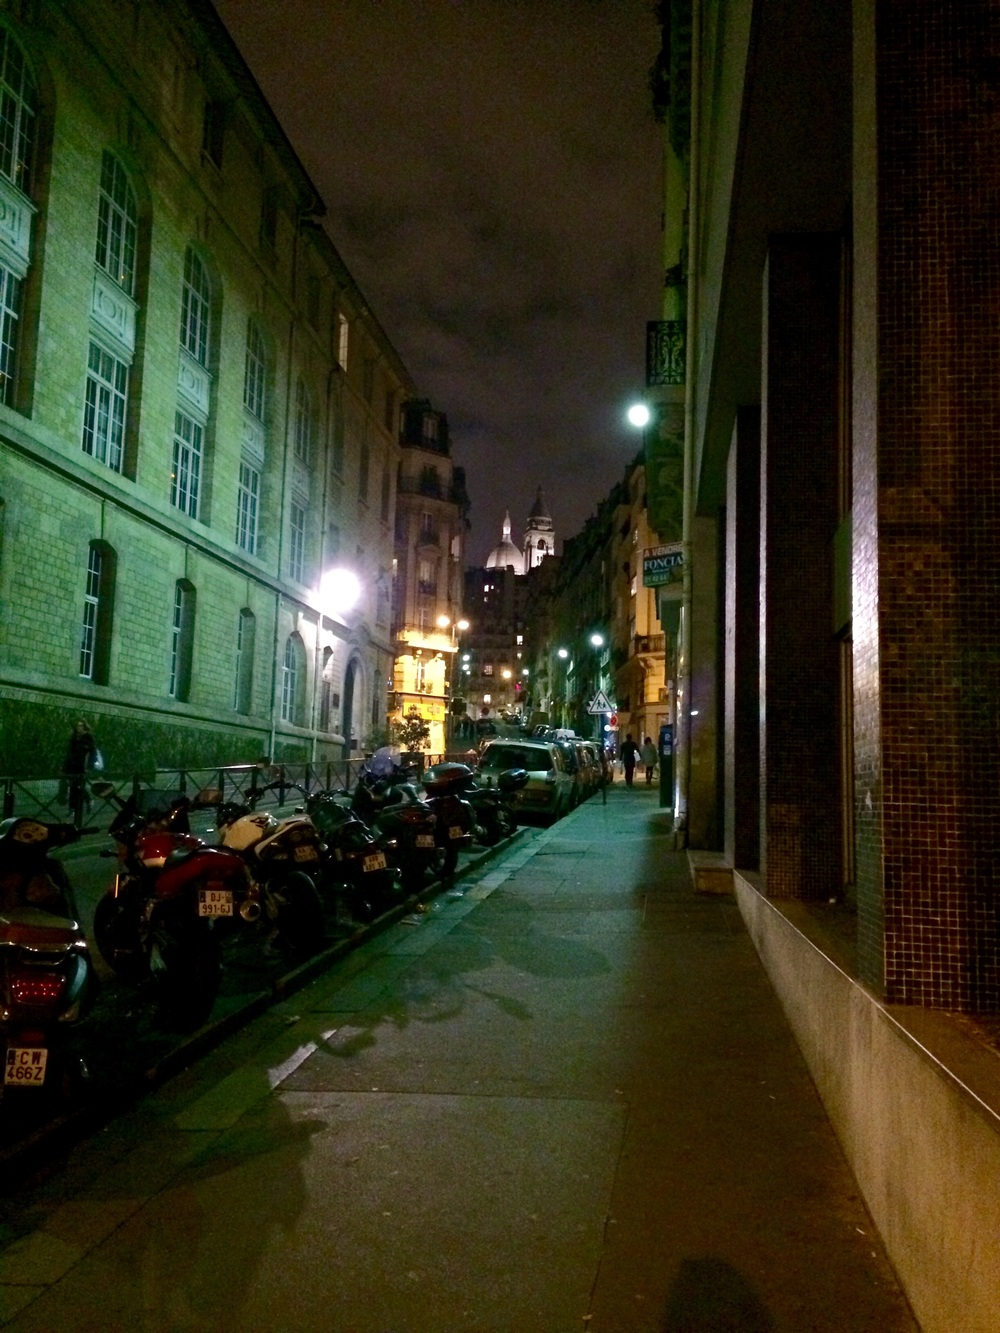 The corner of my street, and the nightly view of Sacre Coeur.